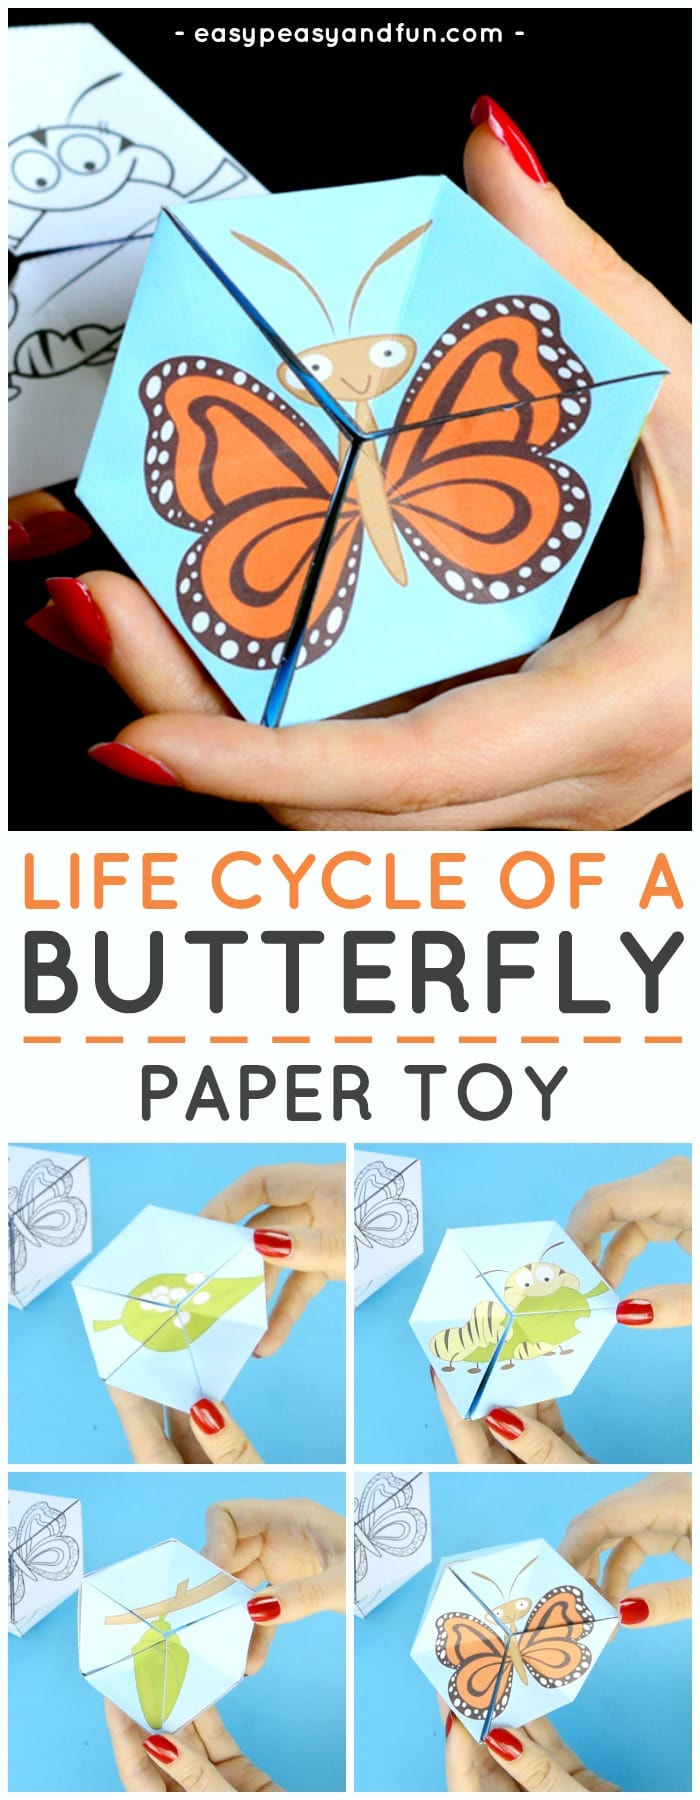 Butterfly Life Cycle Paper Toy